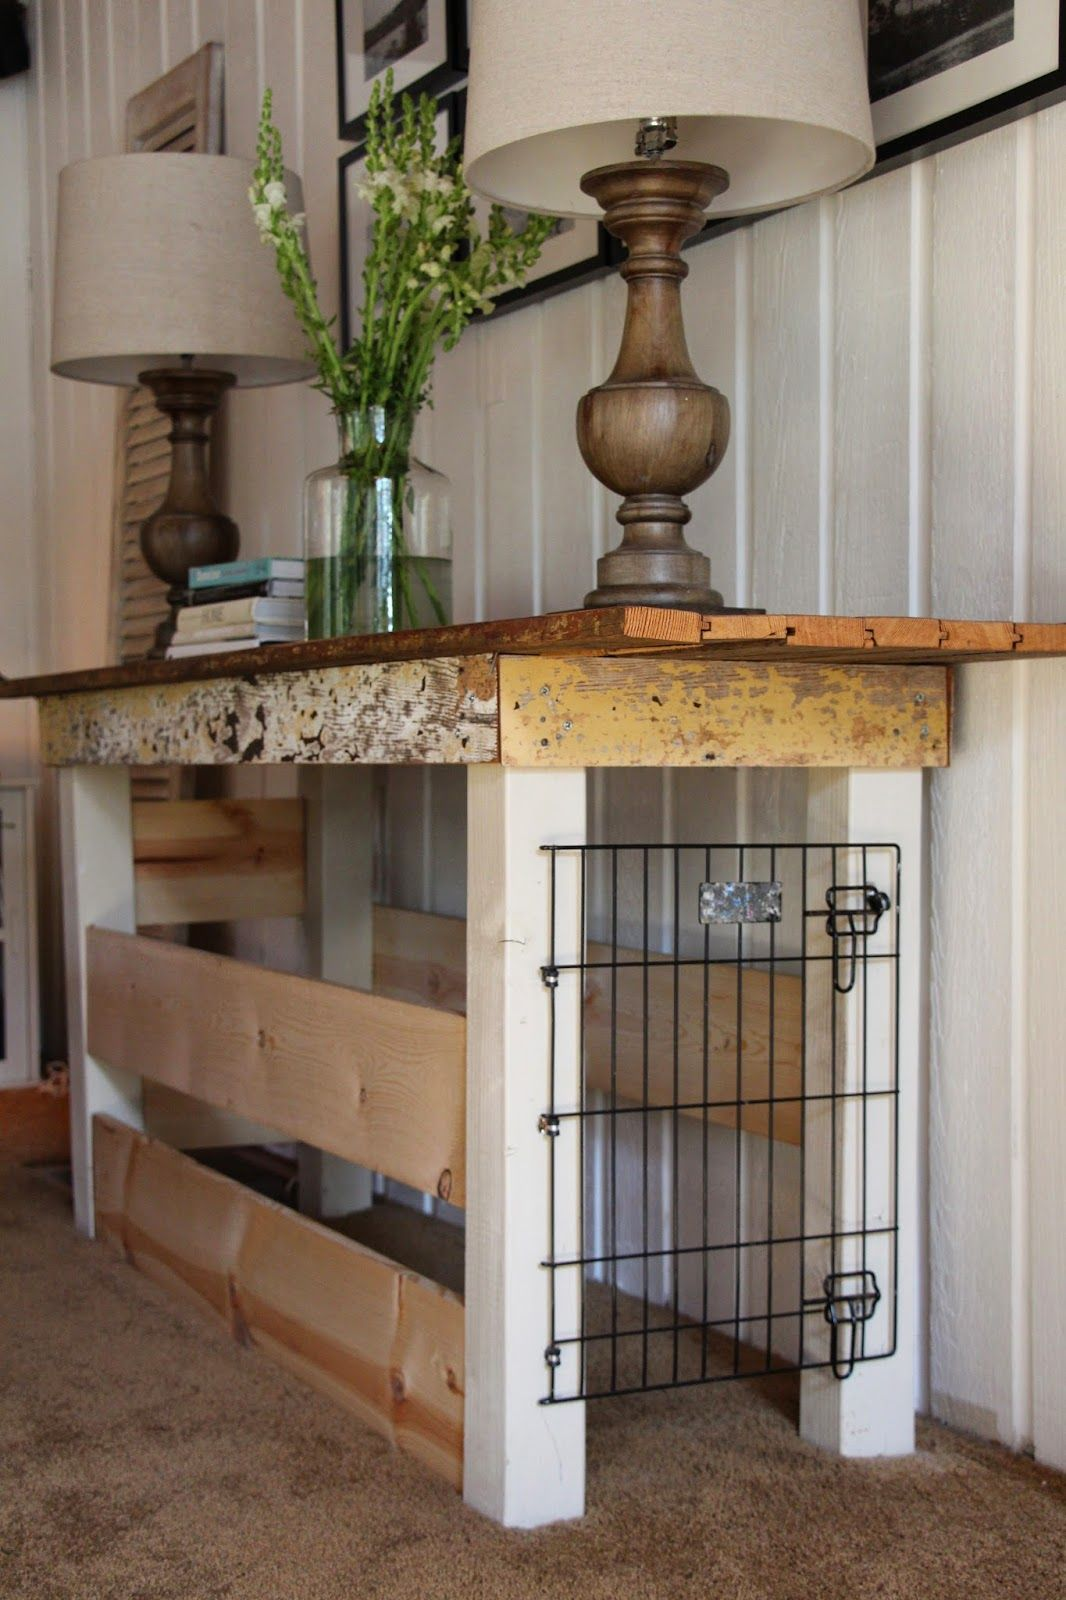 Diy crate console table - My Sweet Savannah Table Turned Dog Crate